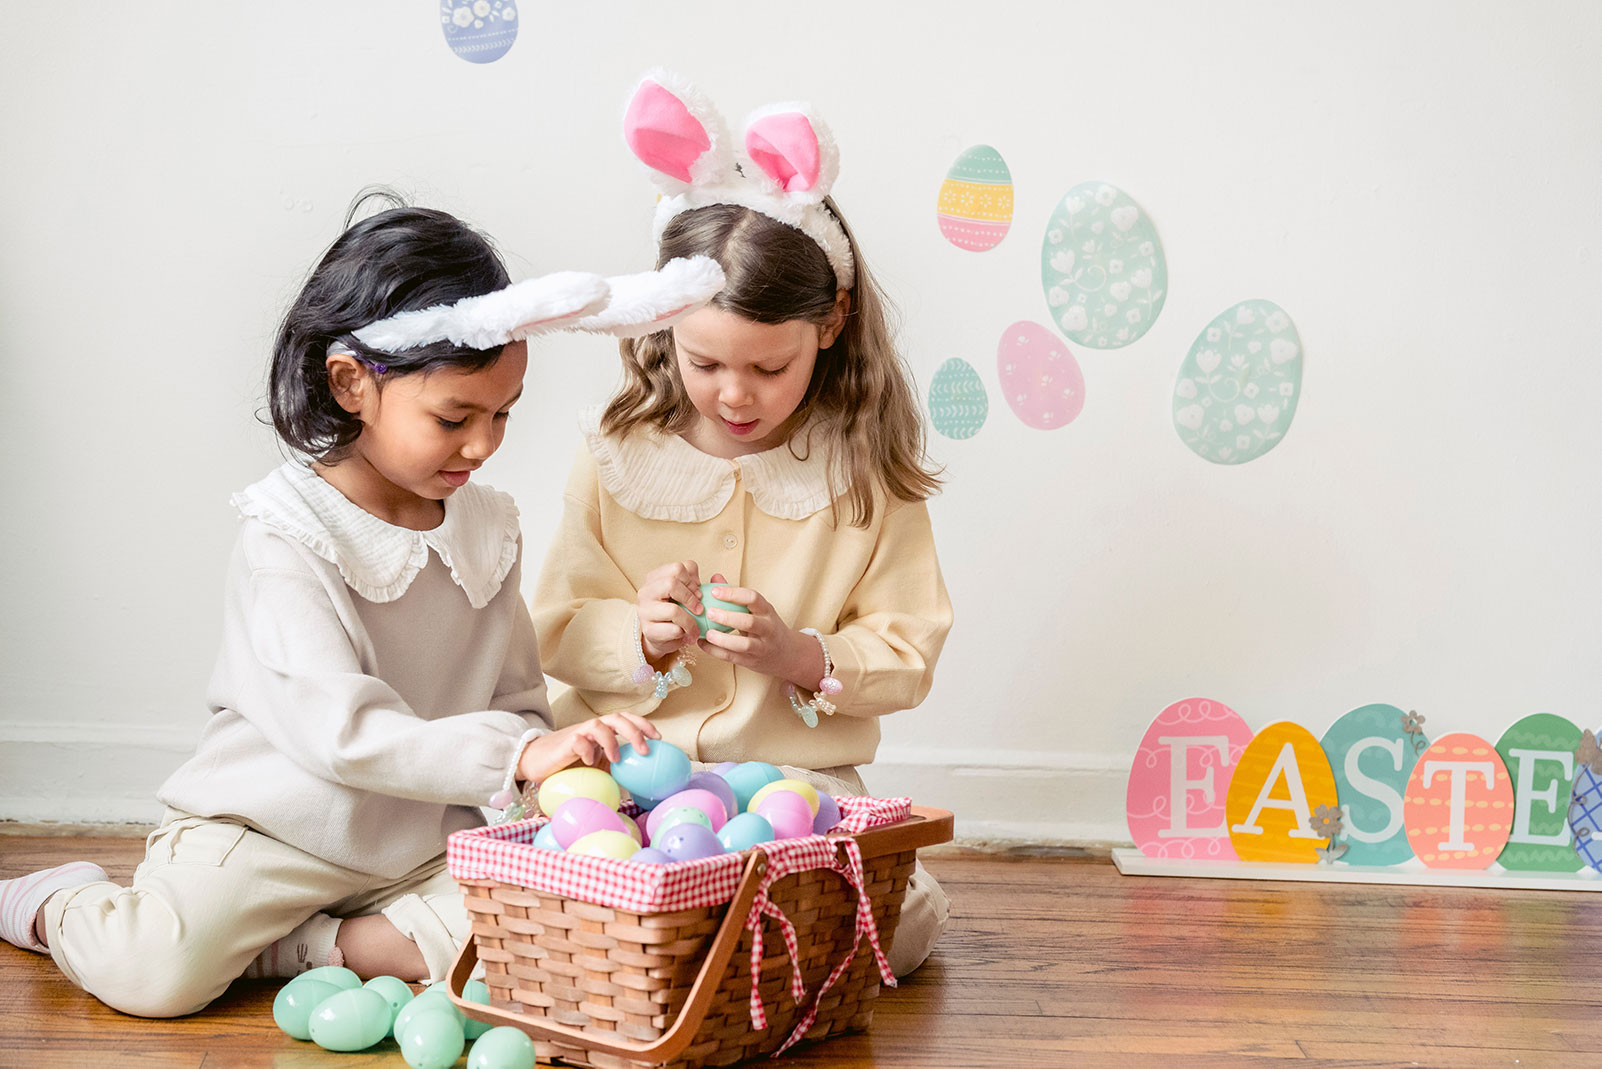 cultural appreciation and awareness in children - Cultural appreciation - Cultural values -Cultural awareness in children - thecandylanddaycare.com